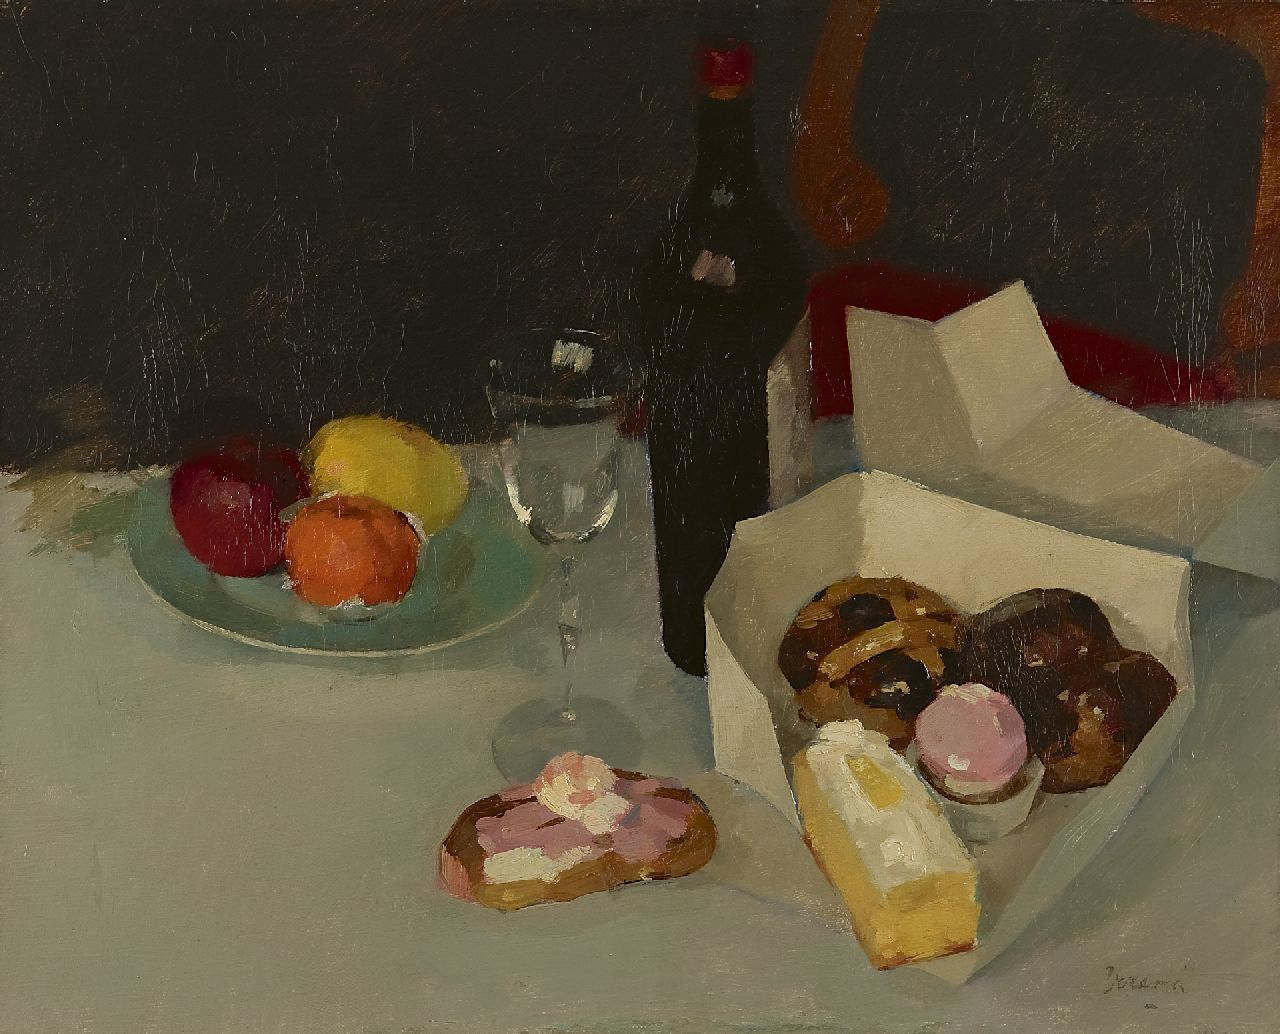 Verdonk F.W.  | Frederik Willem 'Frits' Verdonk, A still life with pastry, oil on canvas 40.7 x 50.4 cm, signed l.r.